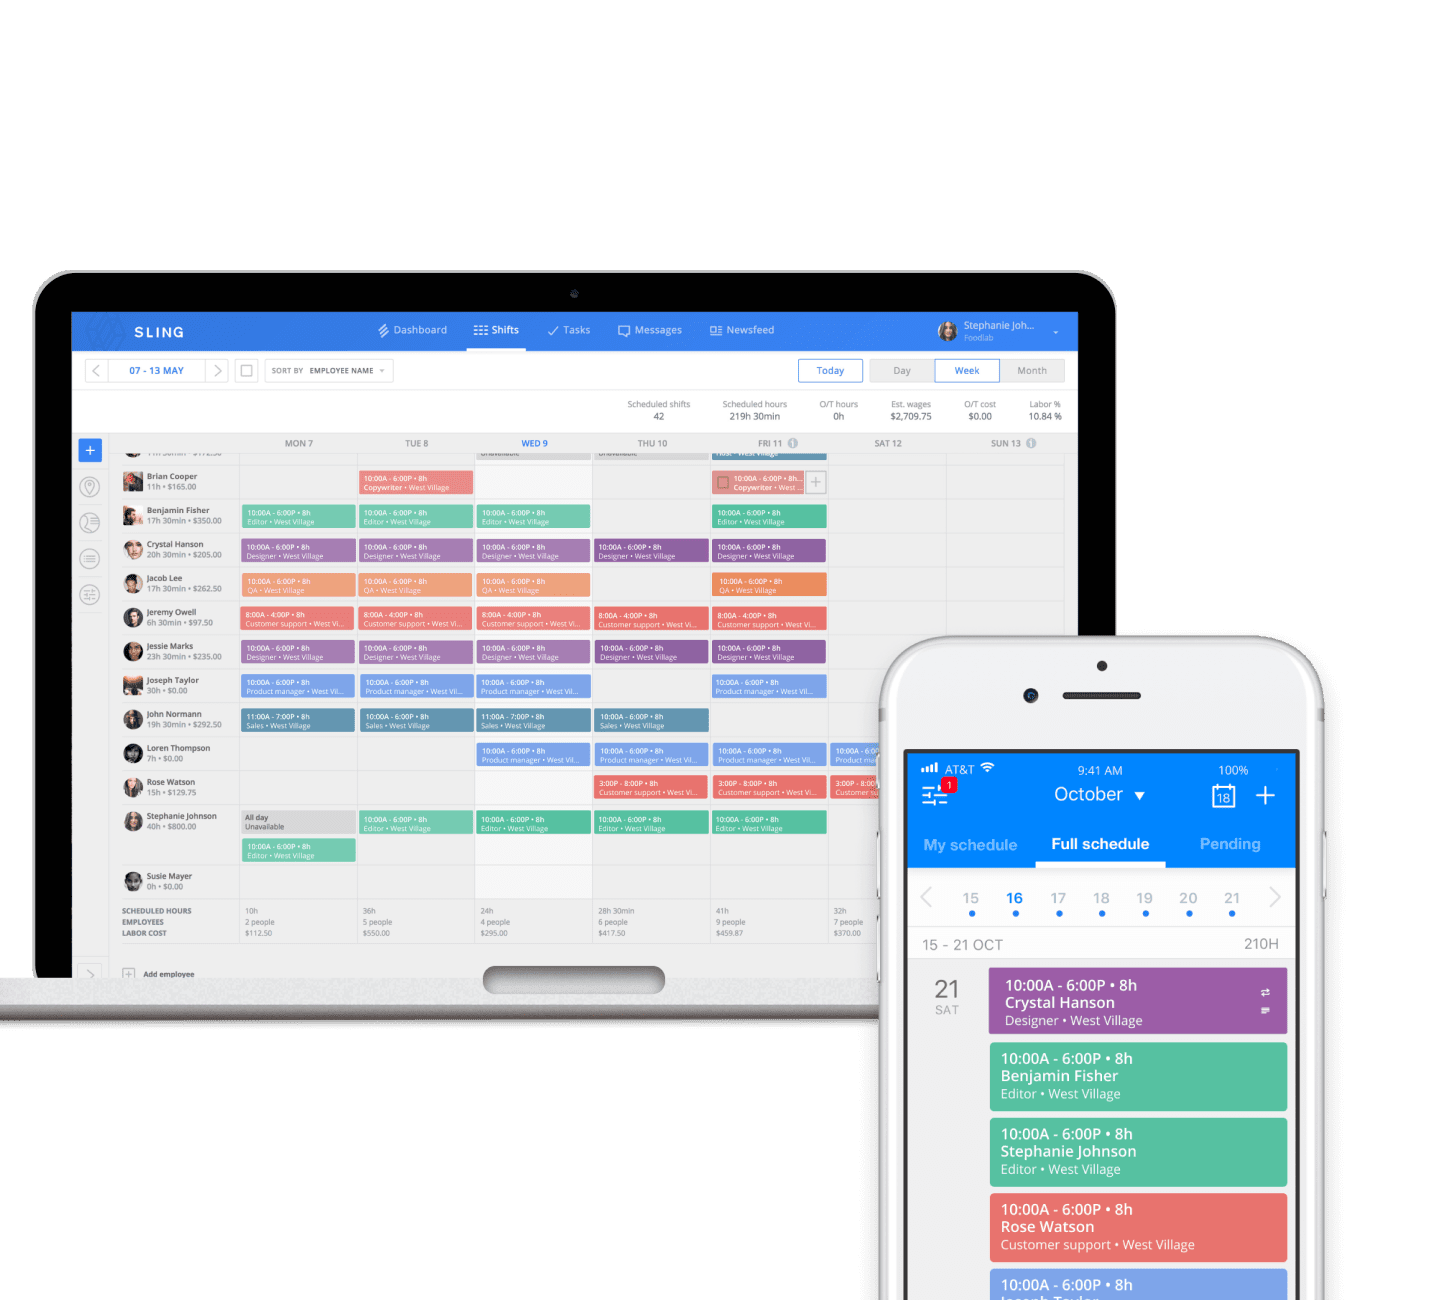 Sling's Scheduling feature